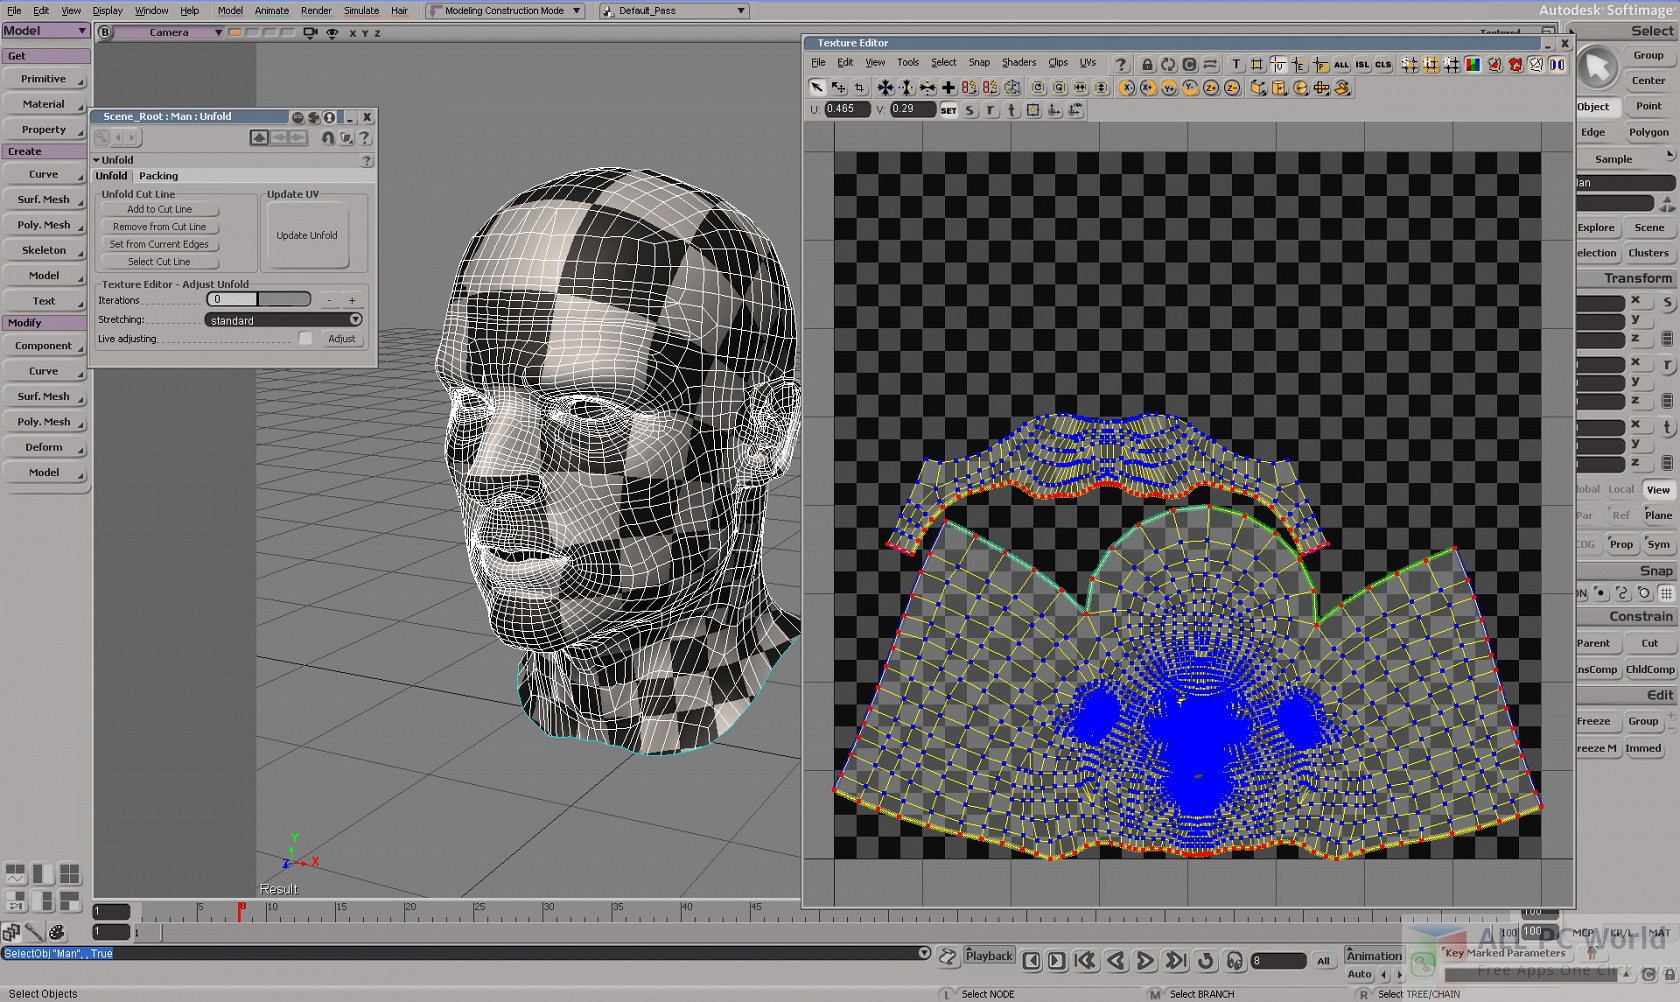 Autodesk SoftImage 2015 Review